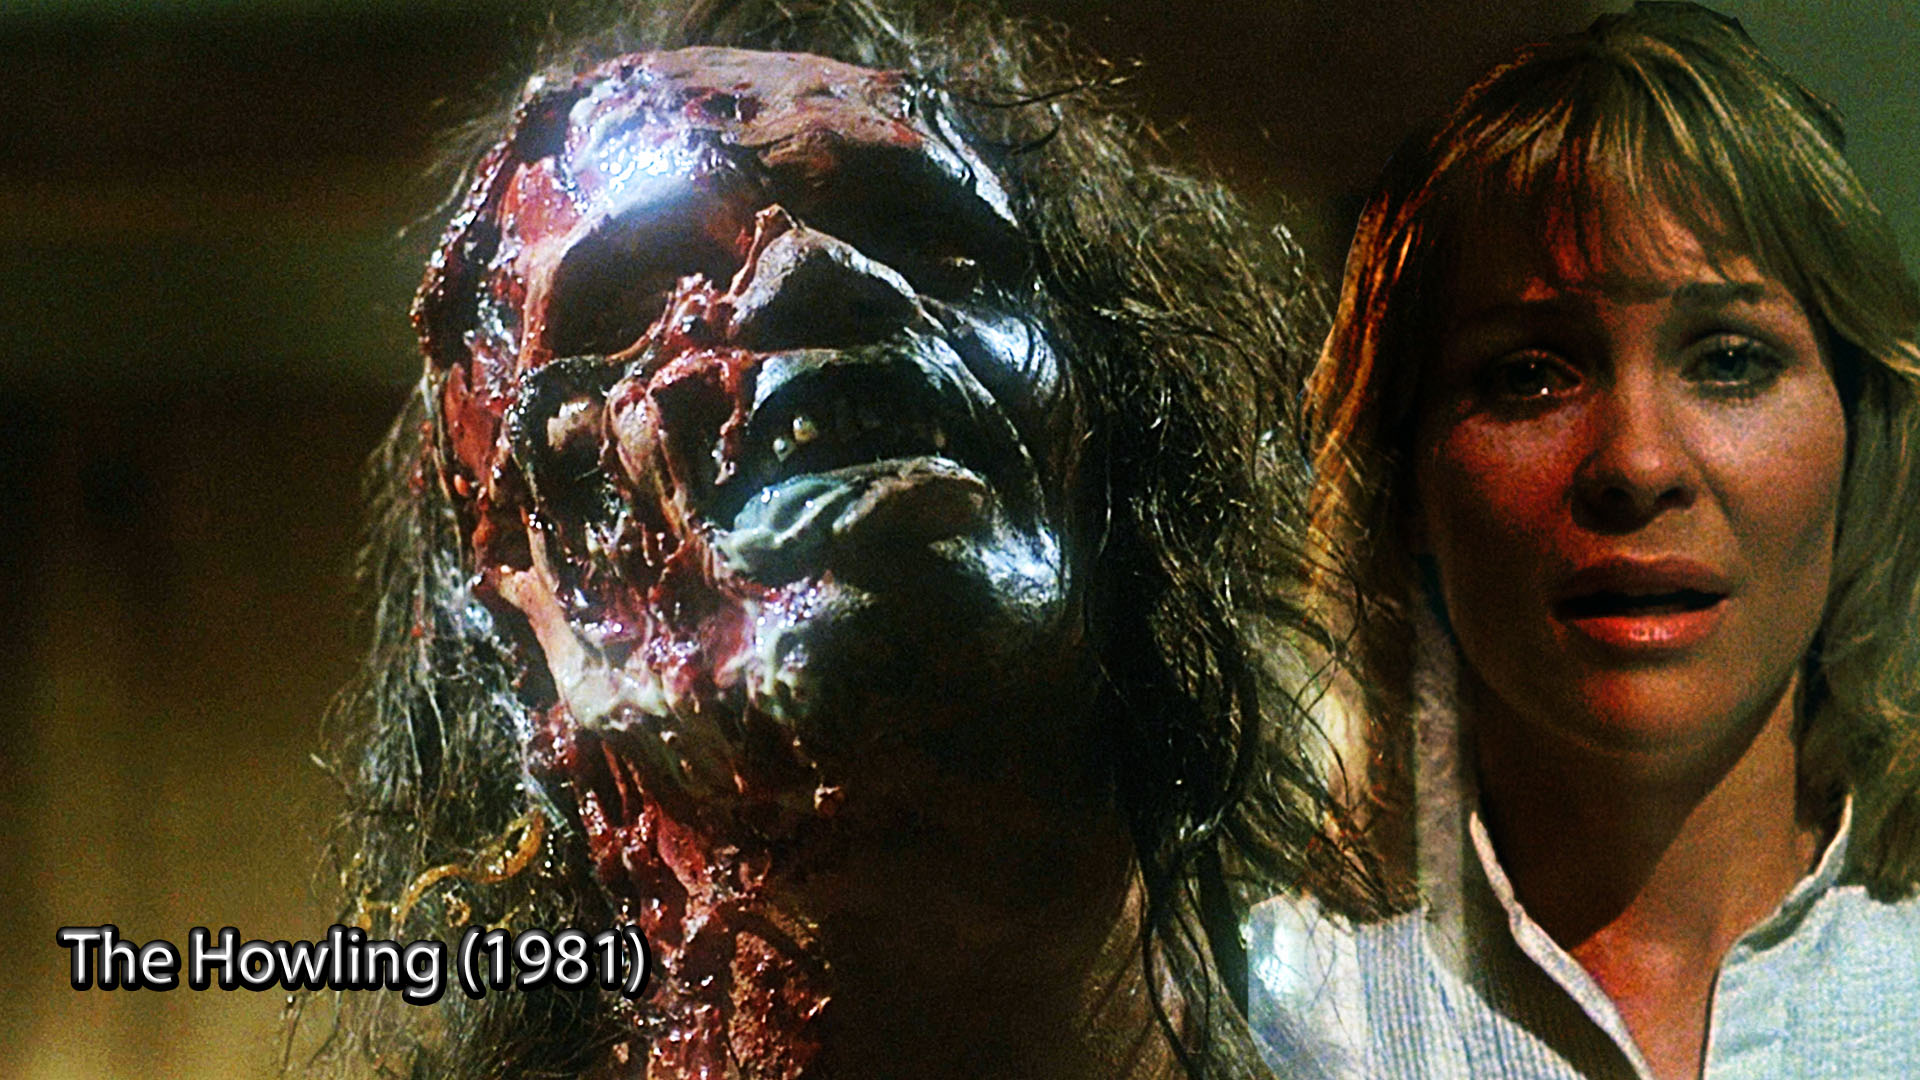 the howling movie wallpapers - photo #3